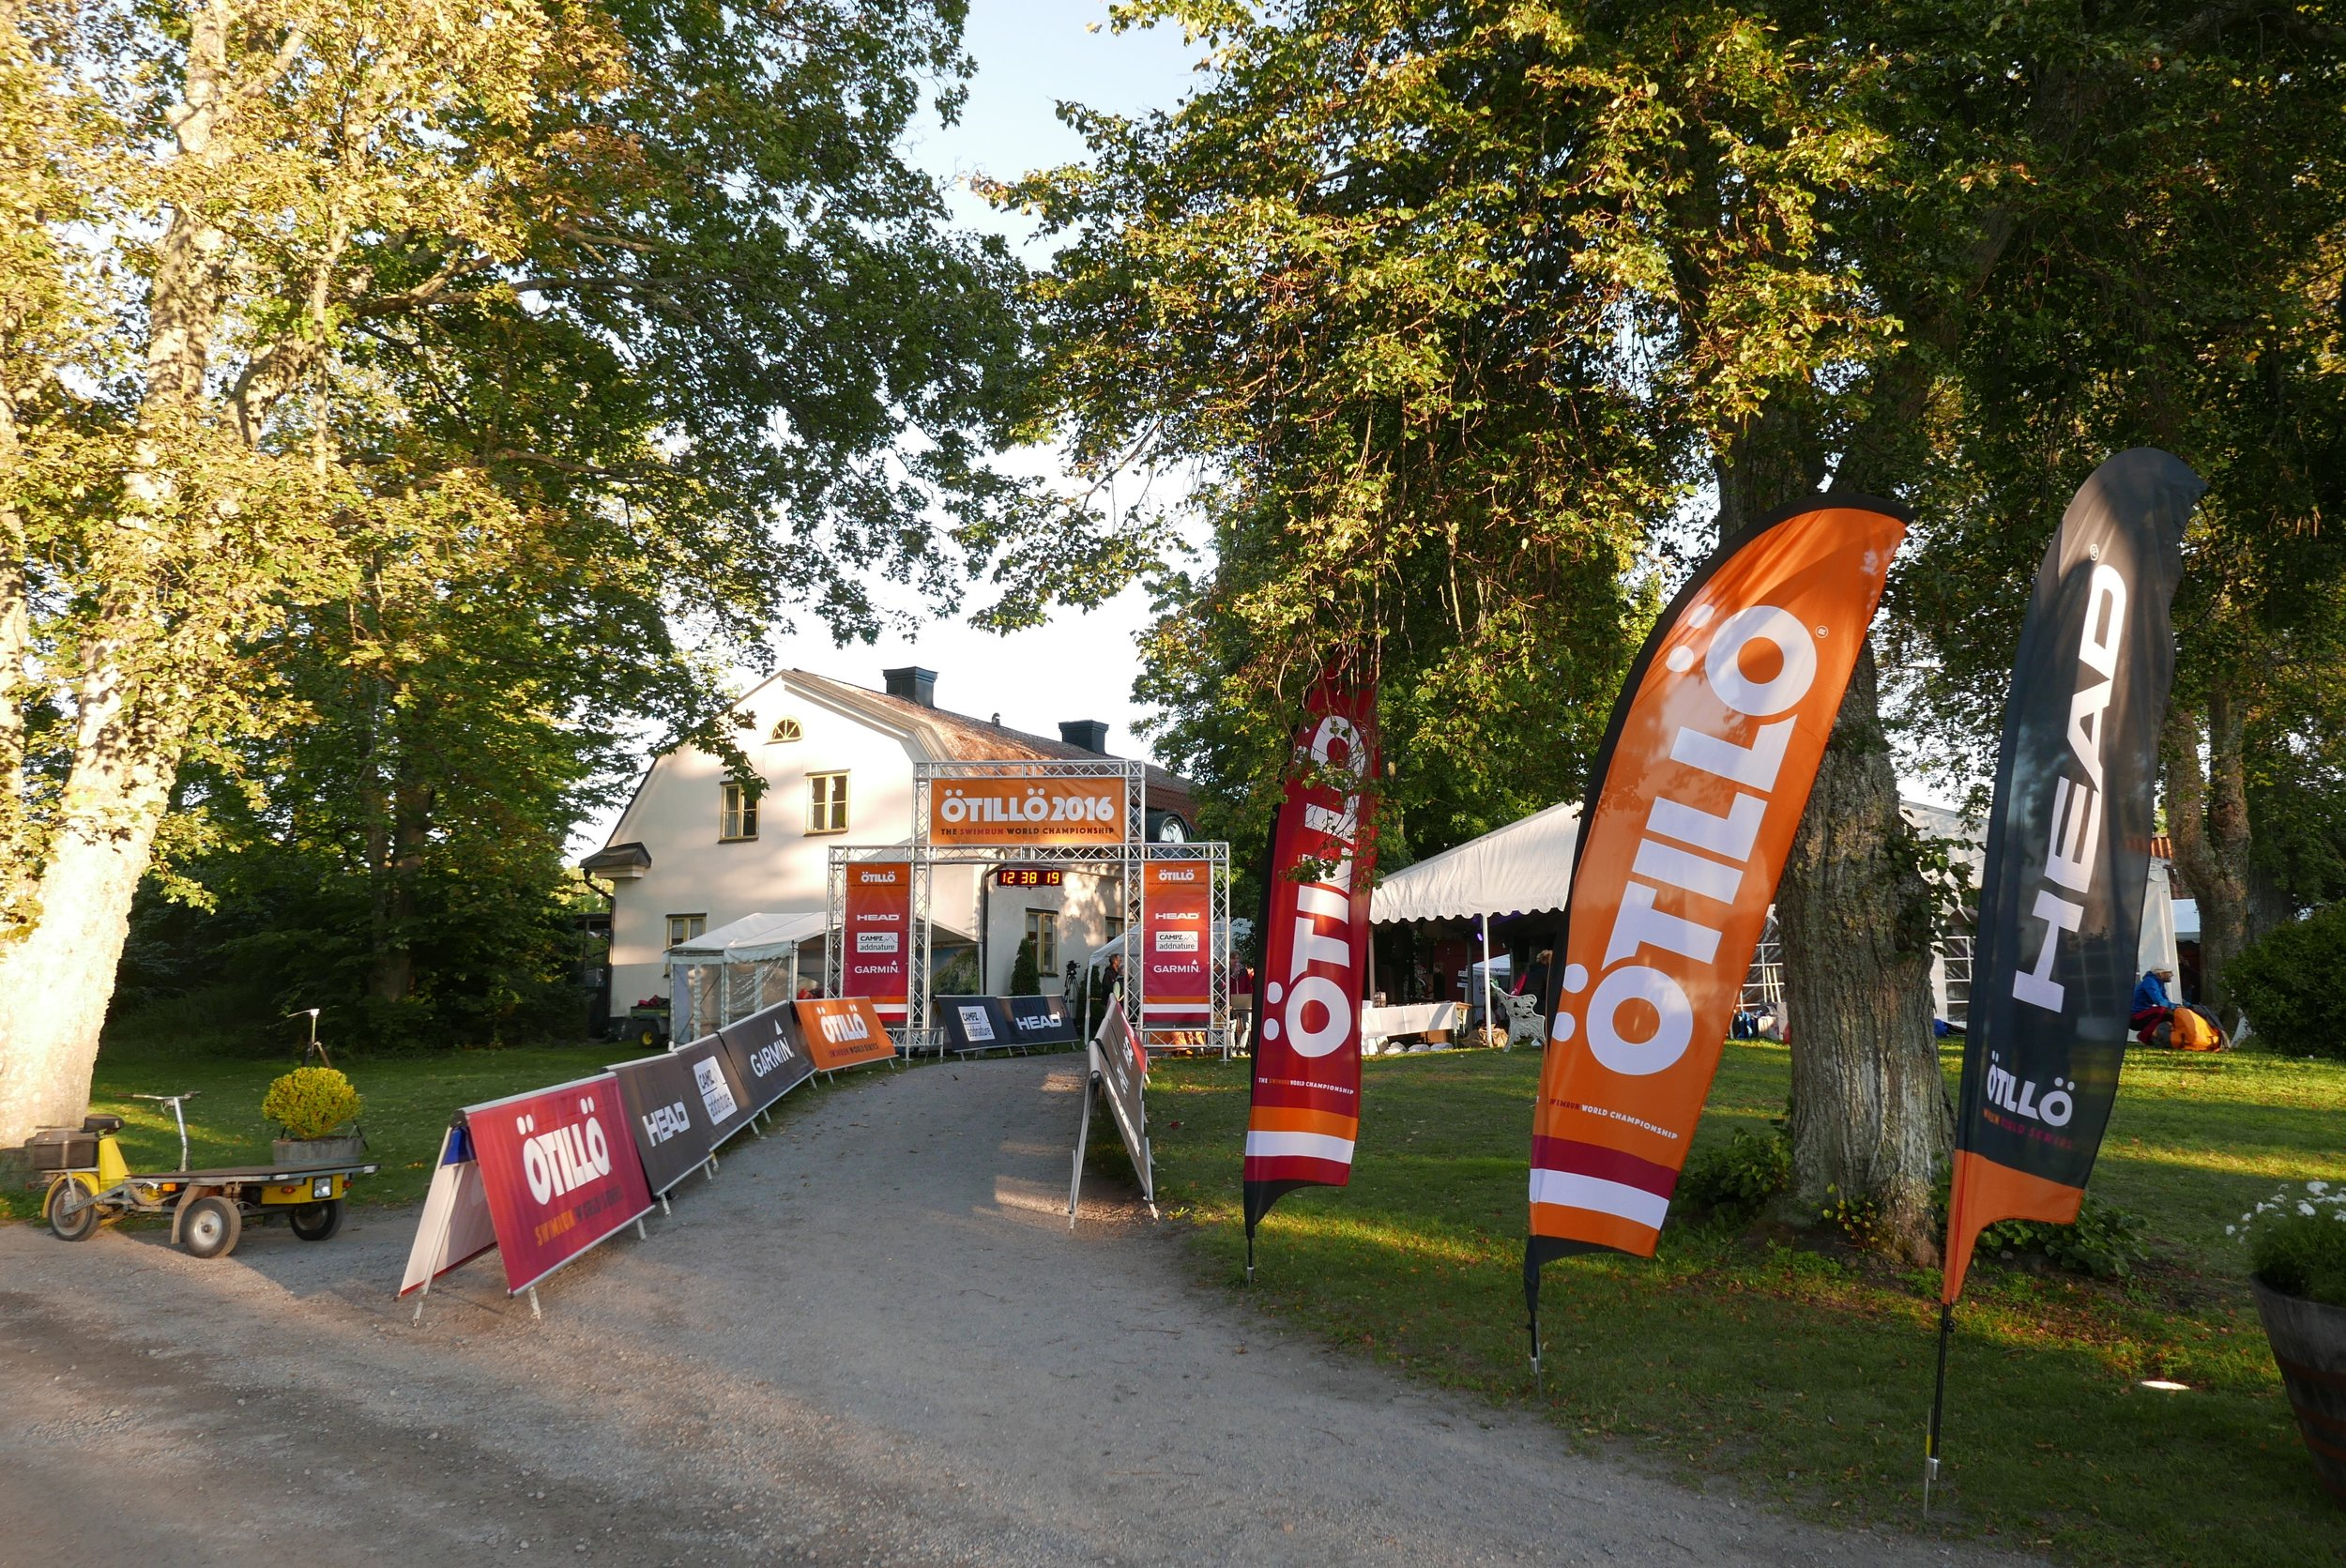 Andy and I helped out at the 'Ö till Ö world Championship' with social media in the Sthlm archipelago, Andy running around the course with the media team and Mia posted at the finish line! Such a fun group of people! Sept. 2016